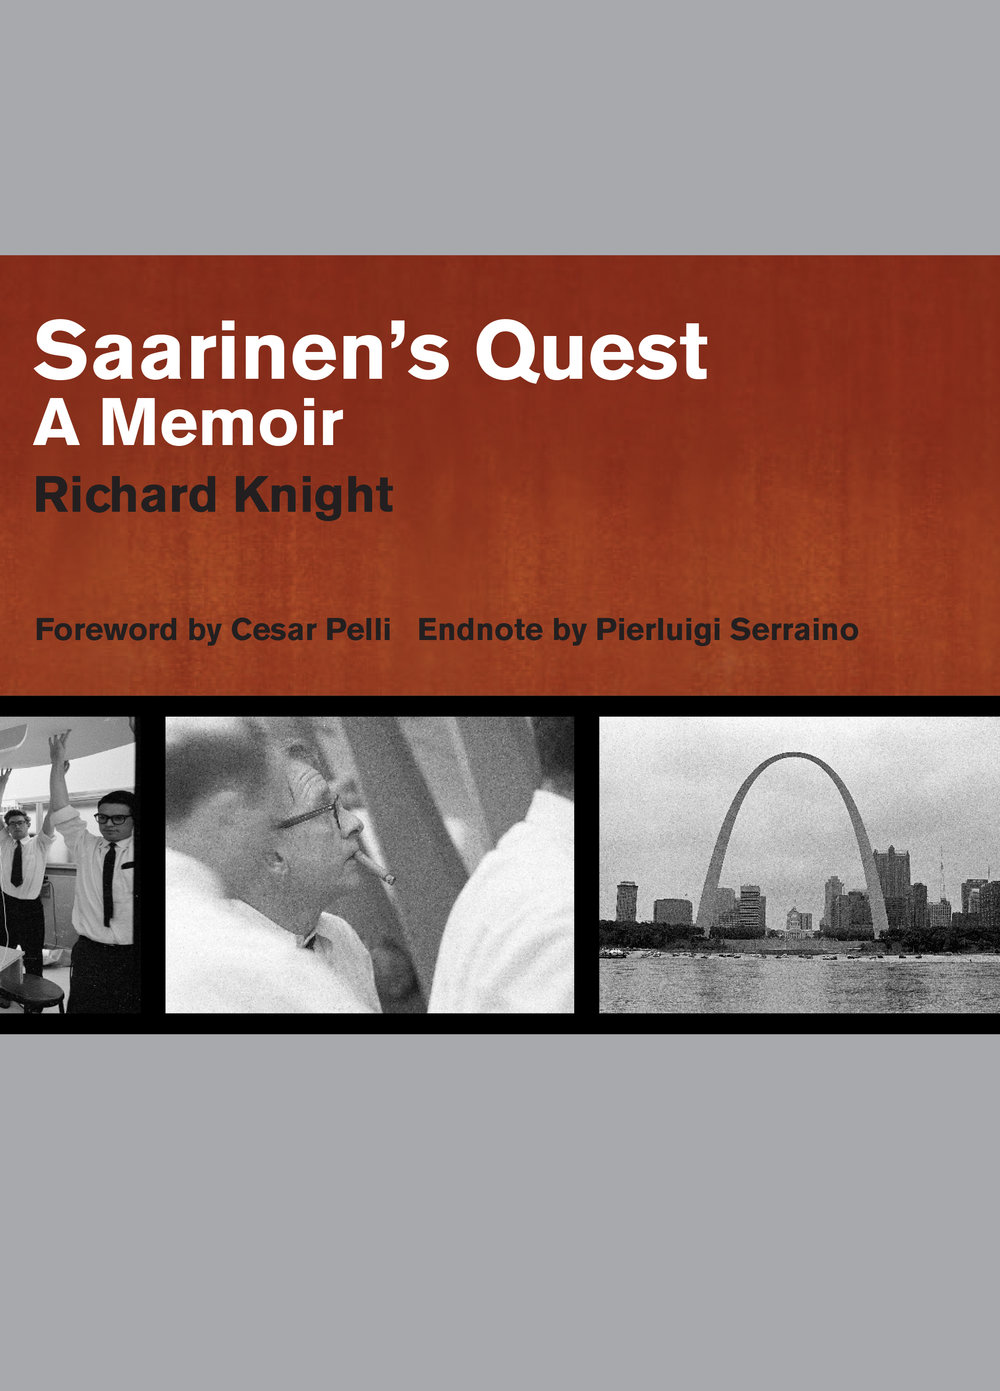 Saarinen's Quest: A Memoir